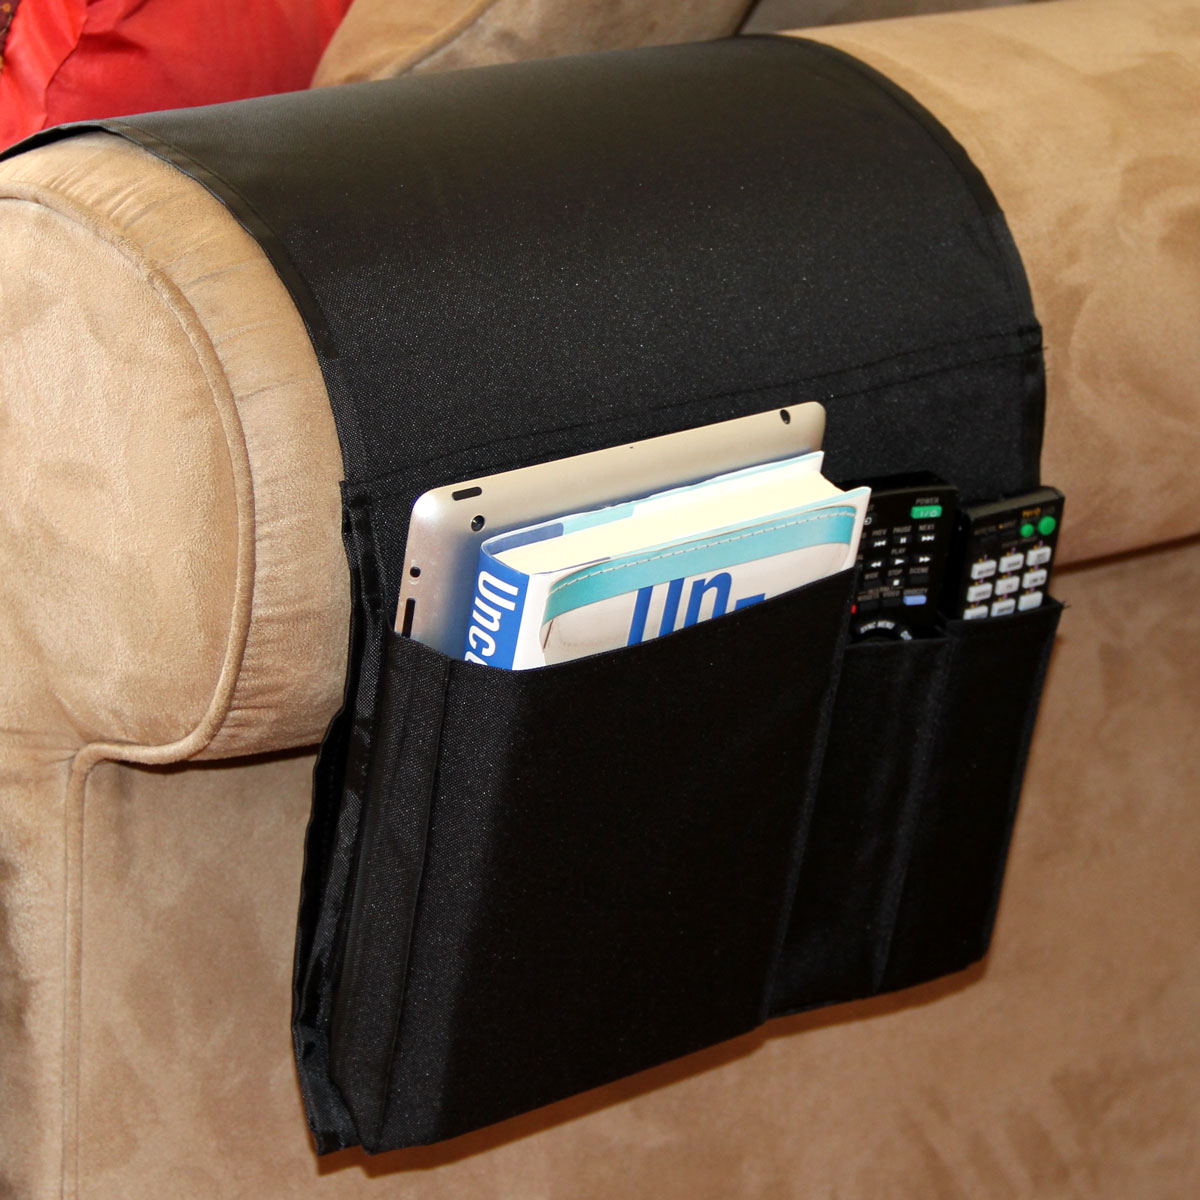 Wallniture Sofa Couch Chair Armrest Caddy Pocket Organizer Great for Ipad  Remote Game Controller & Wallniture Sofa Couch Chair Armrest Caddy Pocket Organizer Great for ...